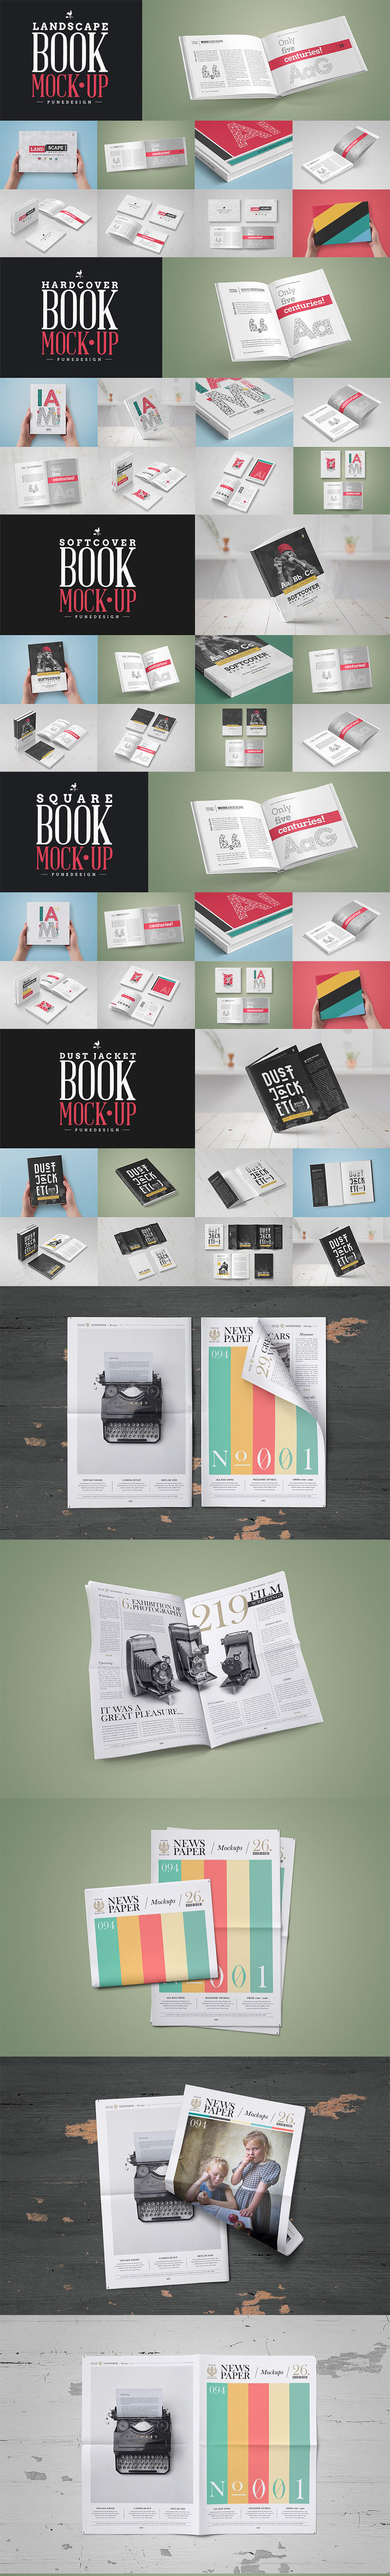 book mockup / dust jacket edition by pune design